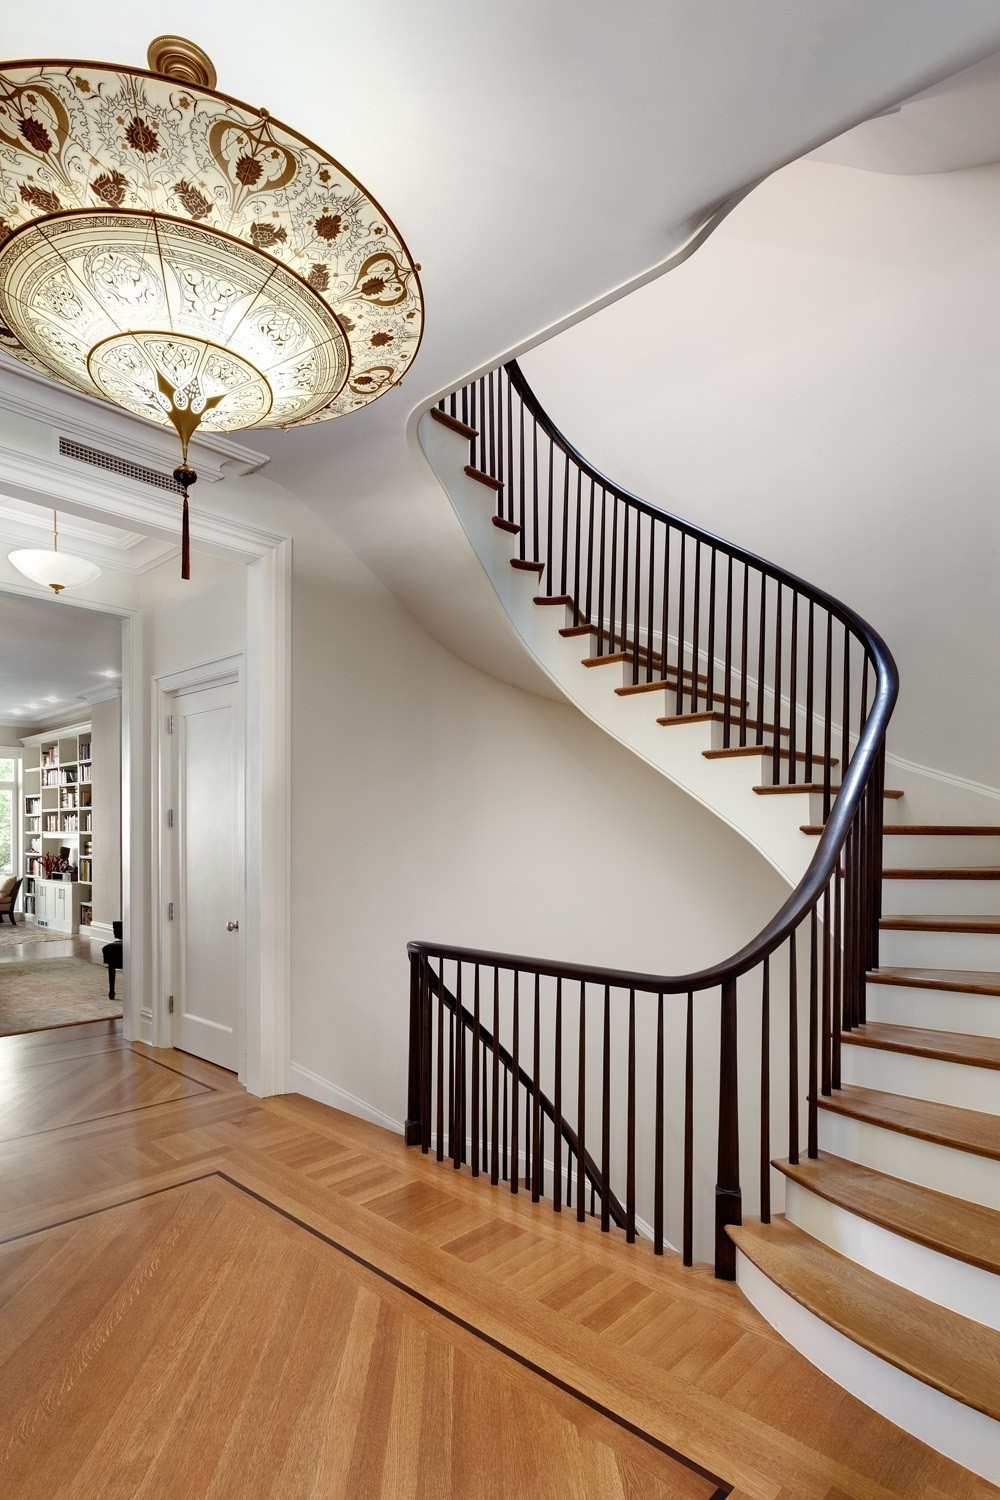 6. Single Family Townhouse for Sale at Upper West Side, New York, NY 10024